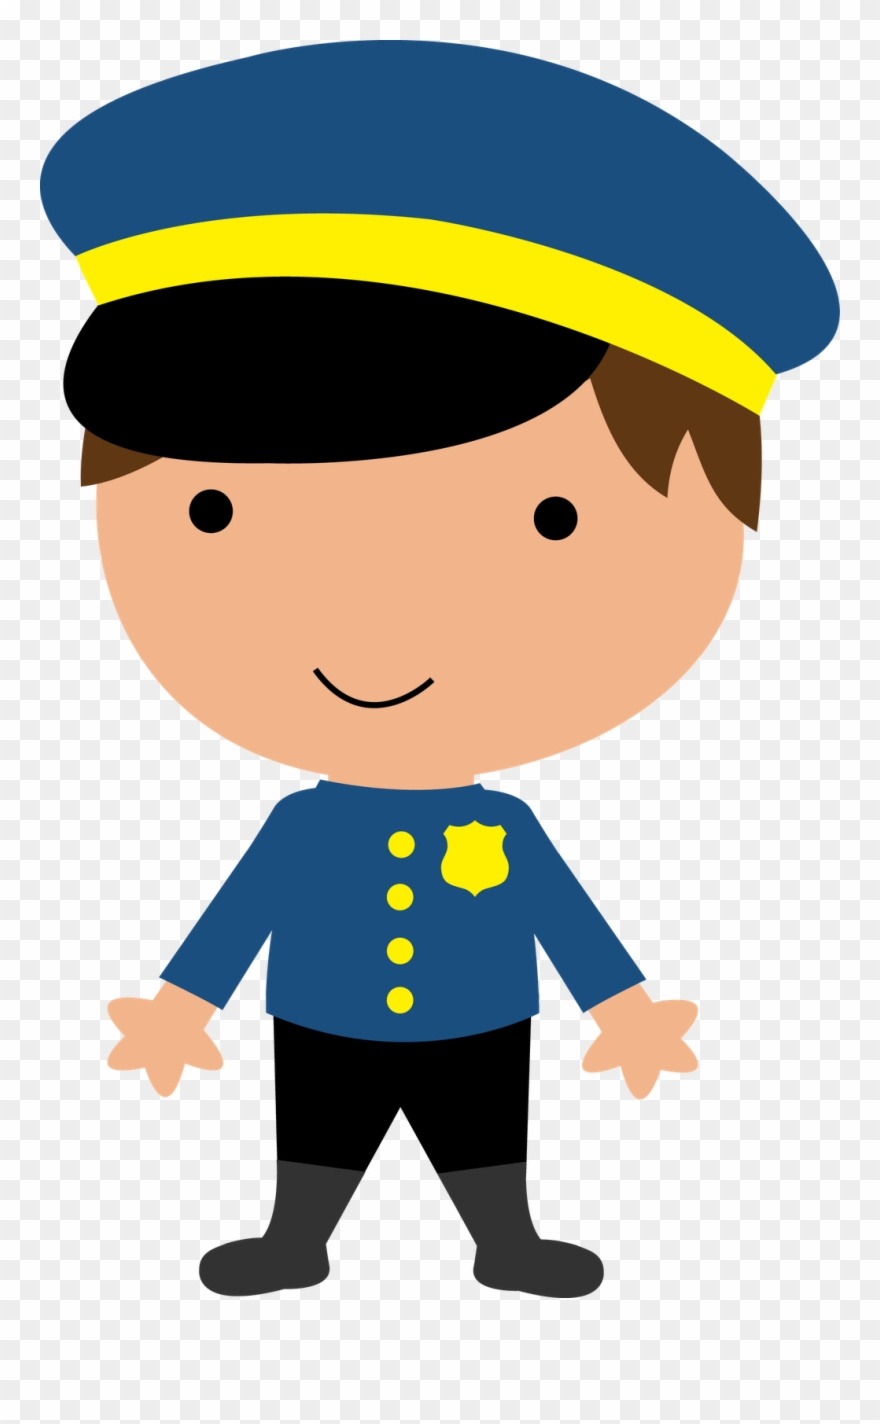 clip art police officer clipart png download 141023 pinclipart clip art police officer clipart png